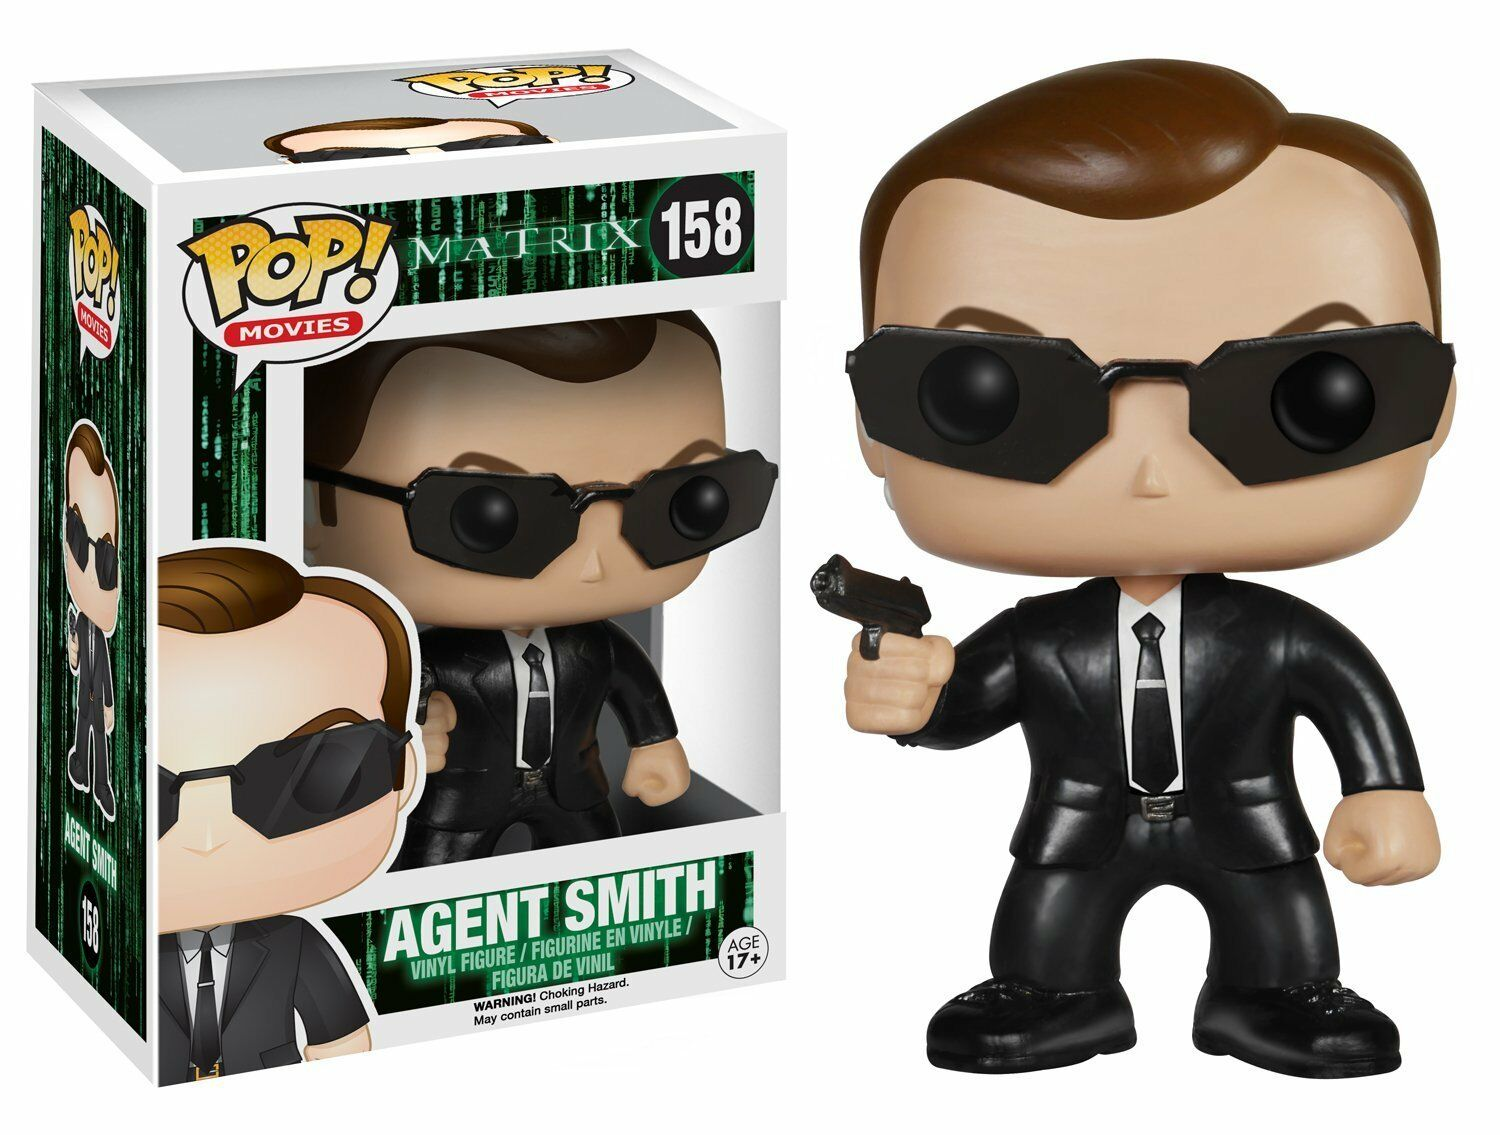 Agent smith hugo - matrix - pop filme   158 vinyl - bild funko